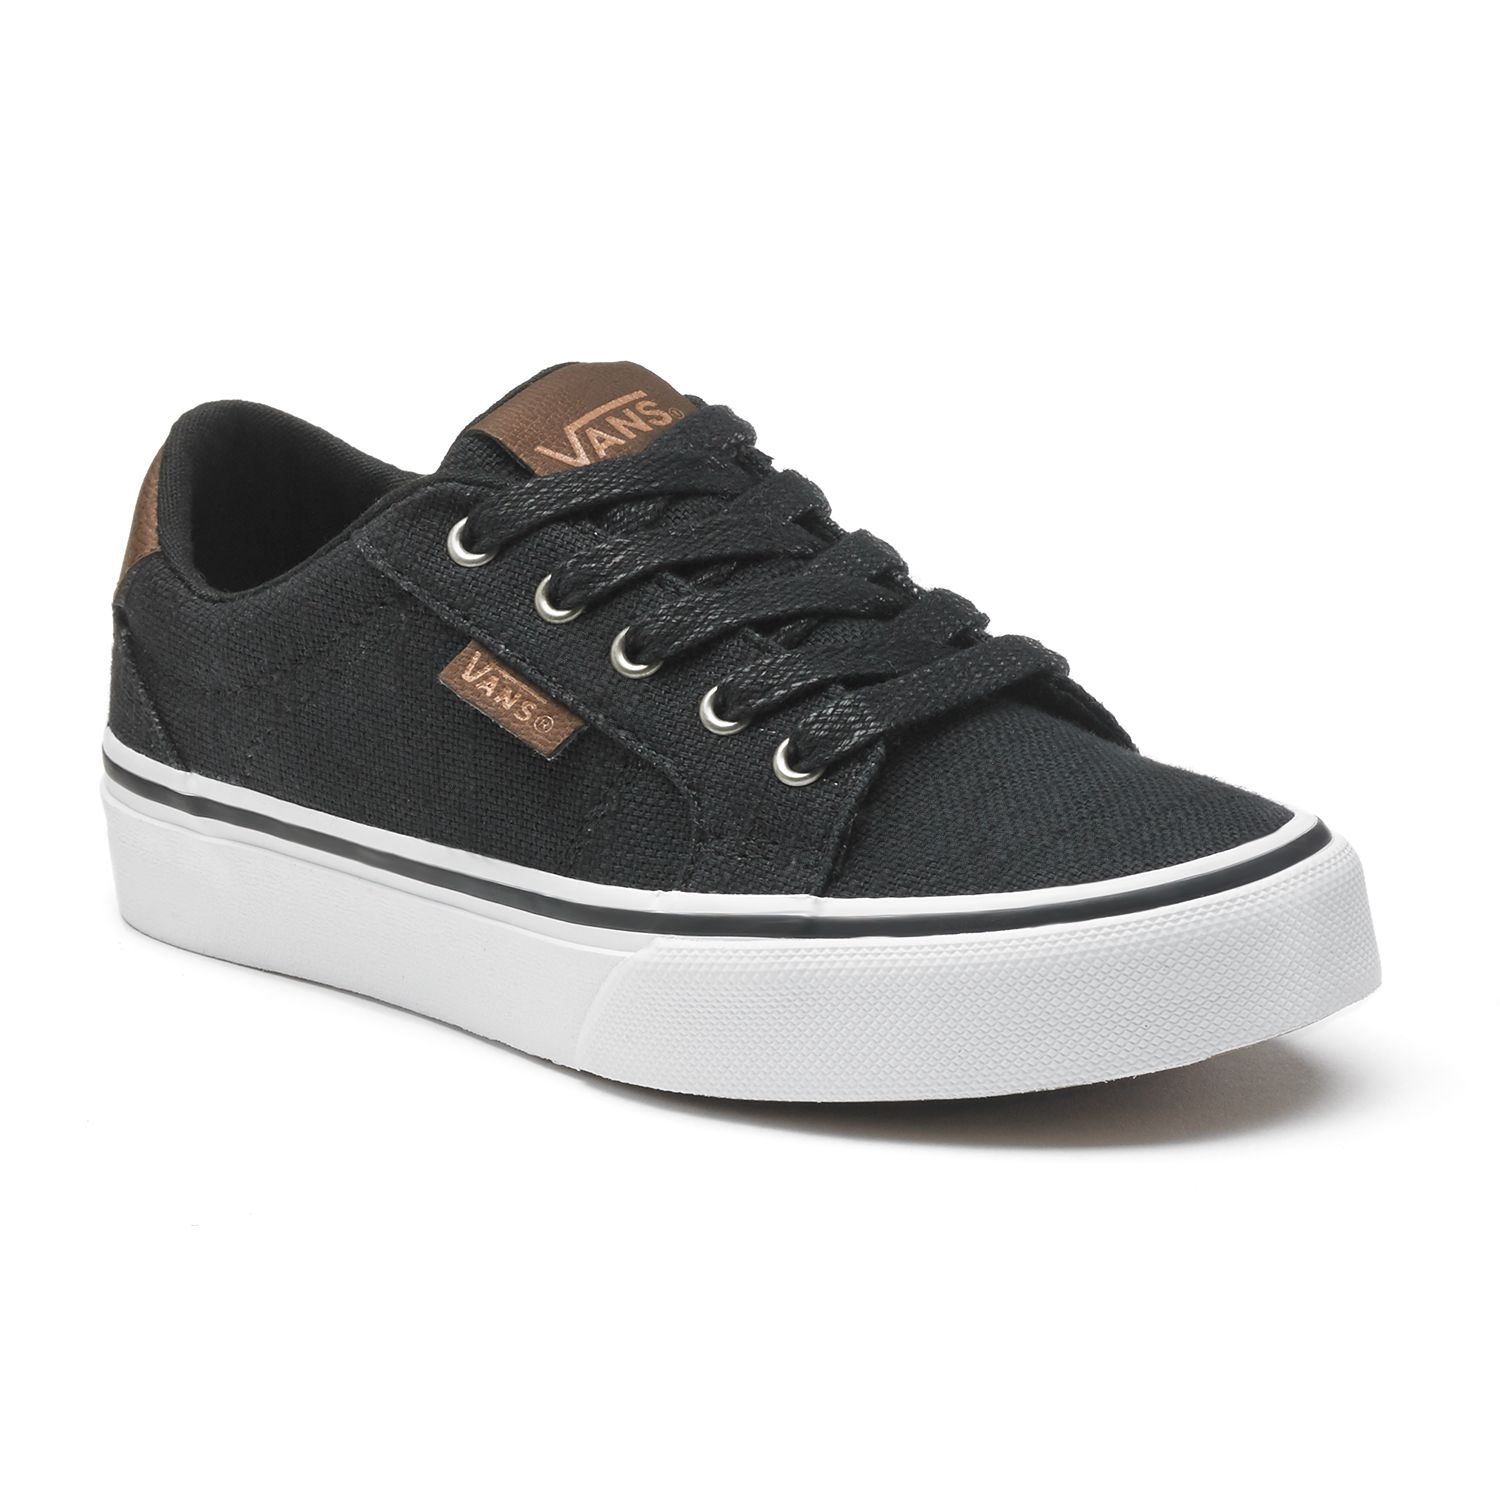 Cheapest website to buy vans shoes